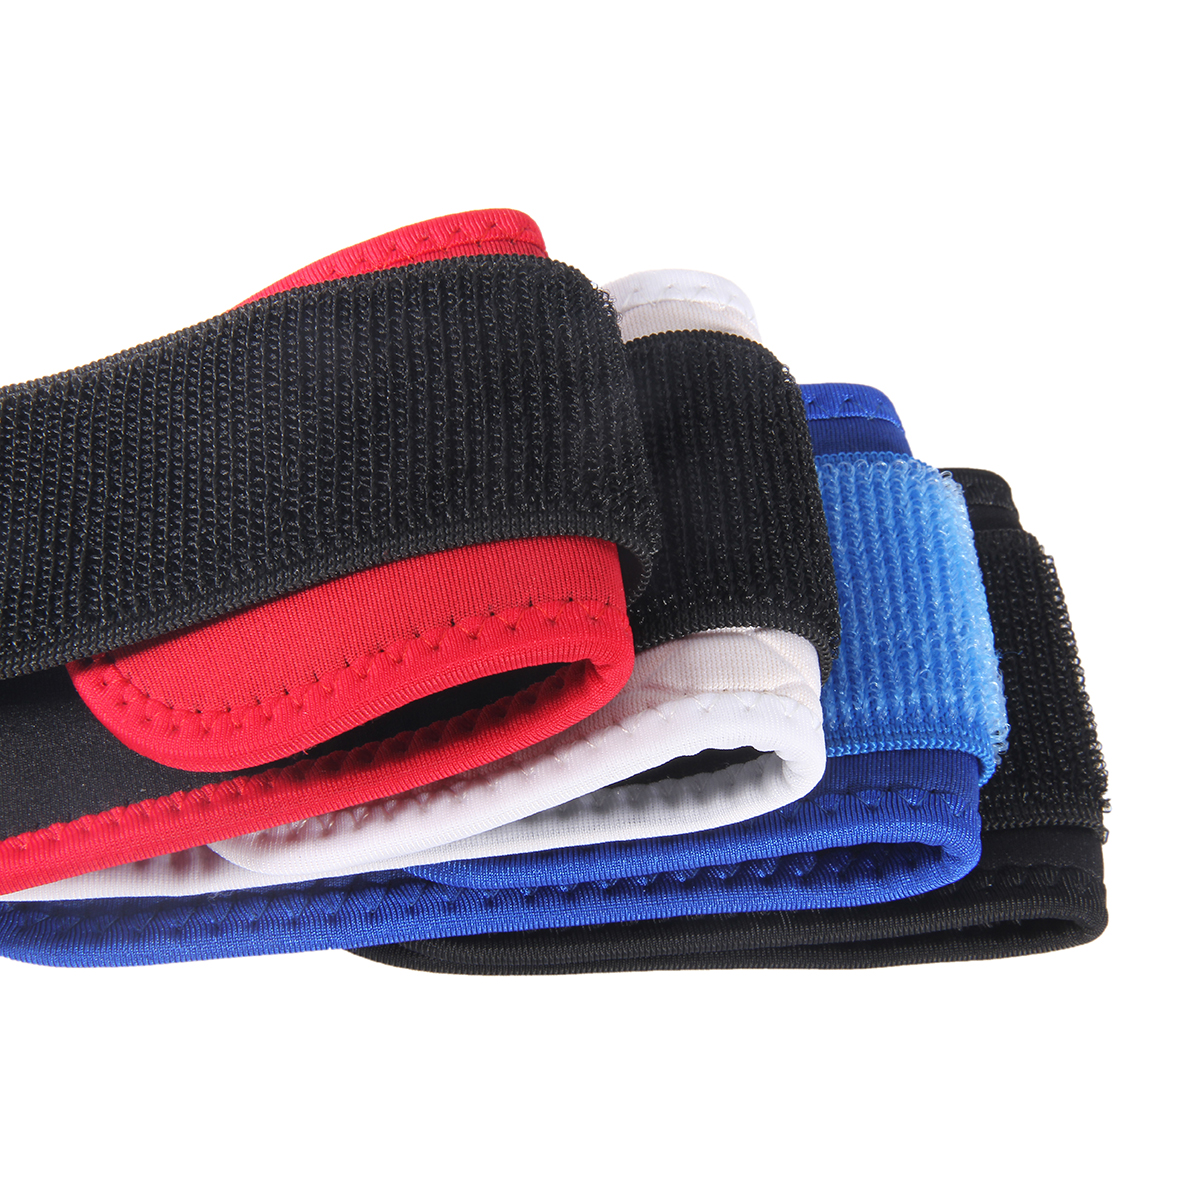 1Pcs Breathable Wrist Support Basketball Badminton Gloves Protection